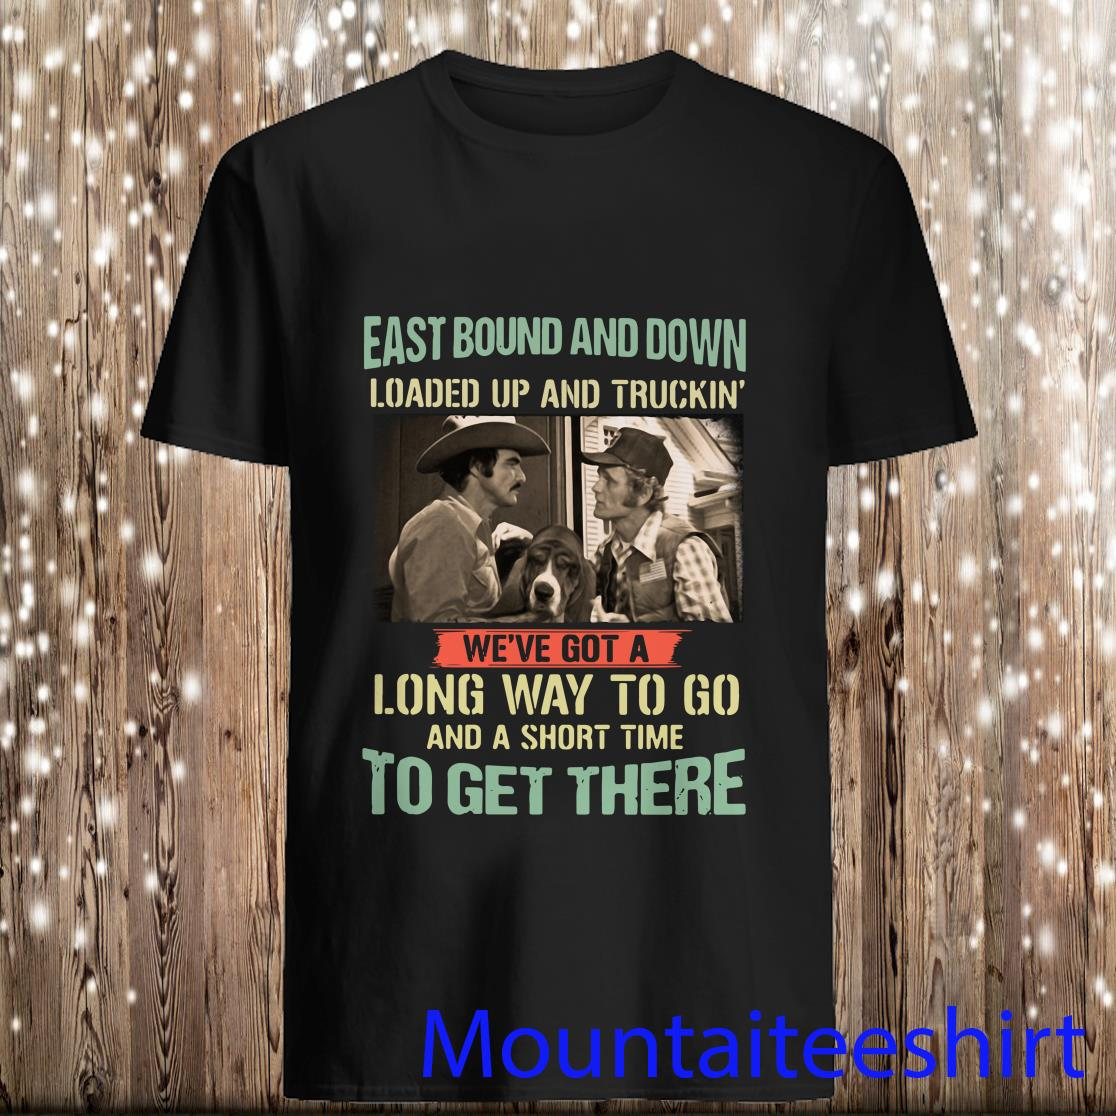 Eastbound And Down Loaded Up And Truckin We've Got A Long Way To Go And A Short Time Shirt